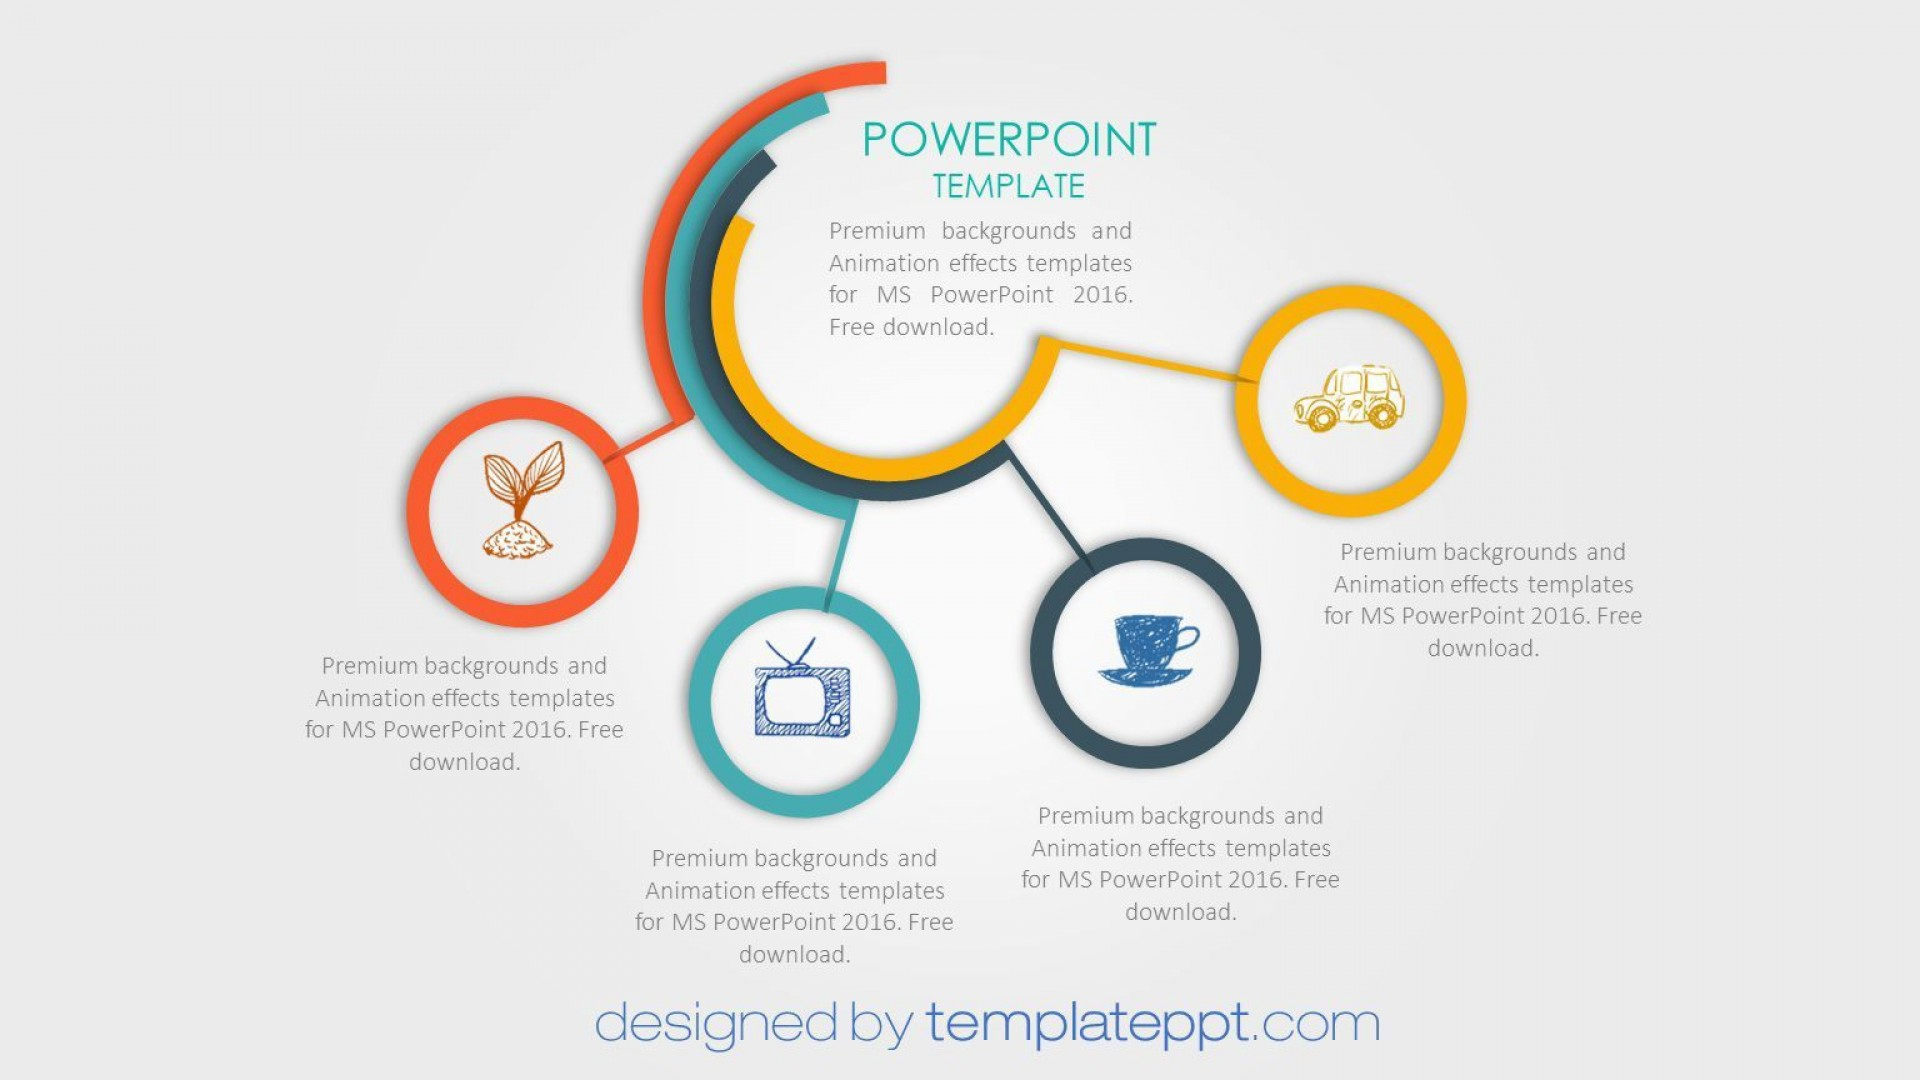 009 Marvelou 3d Animated Powerpoint Template Free Download 2016 Highest Quality 1920